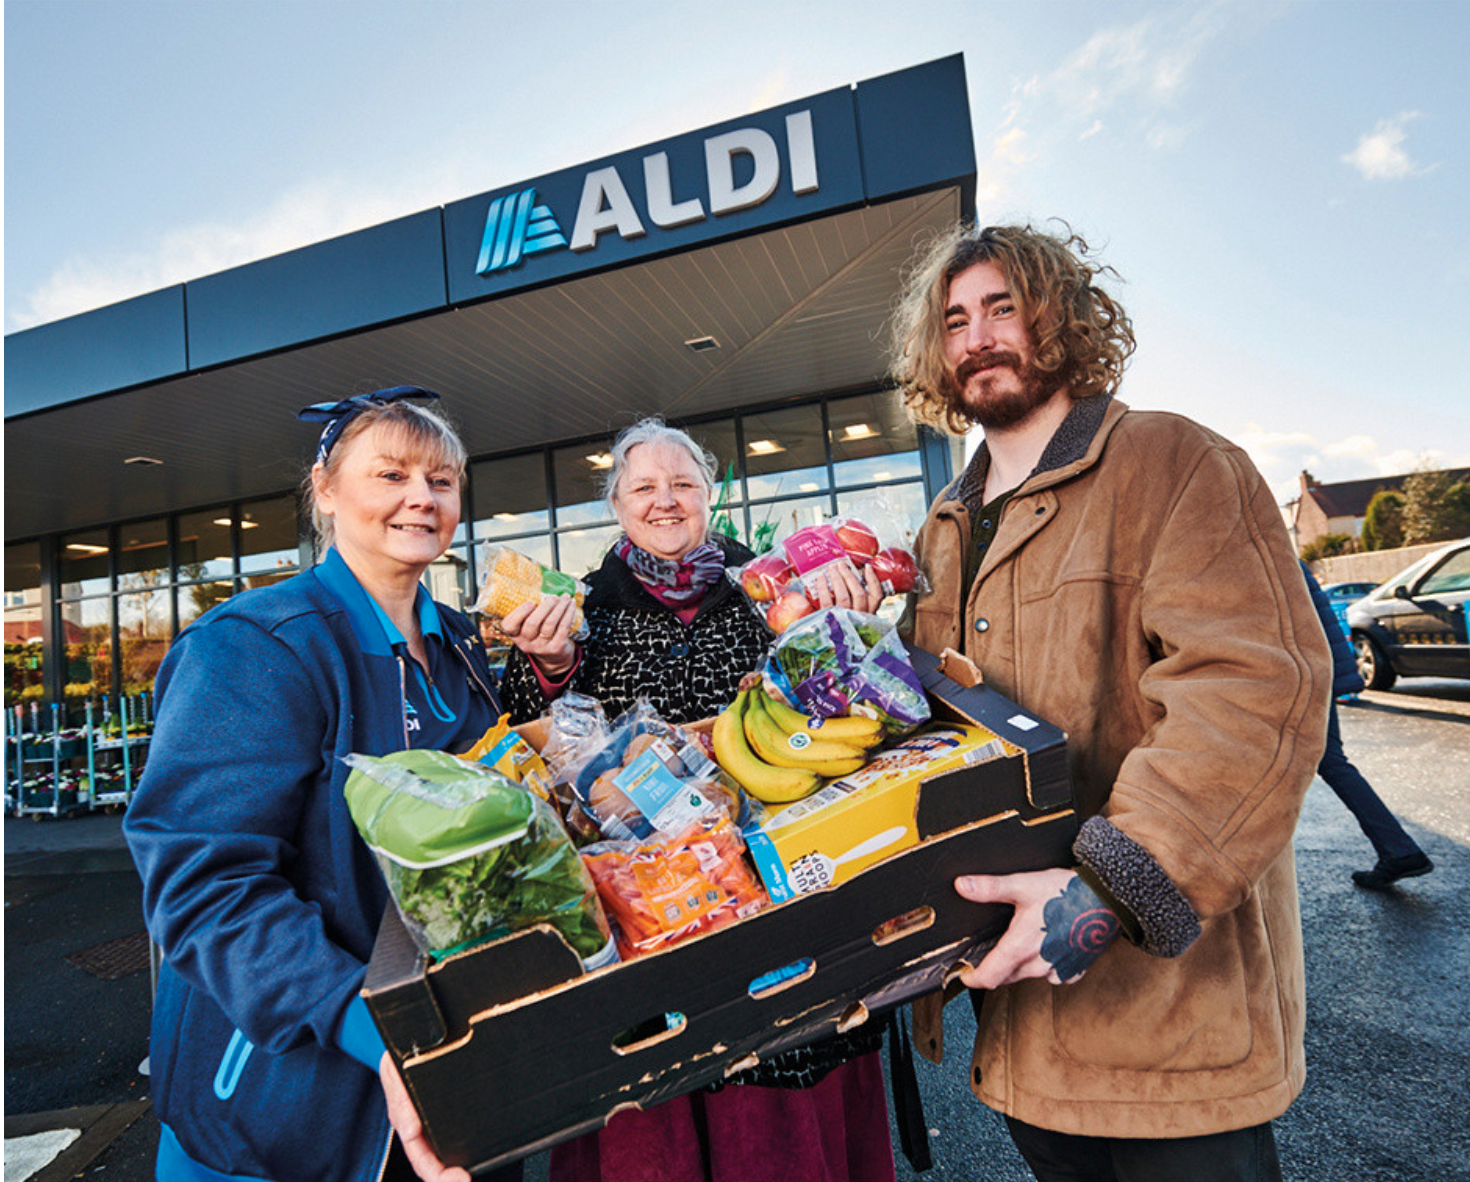 Above: Aldi is working with Neighbourly to pledge 10 million meals for the needy over 2021.